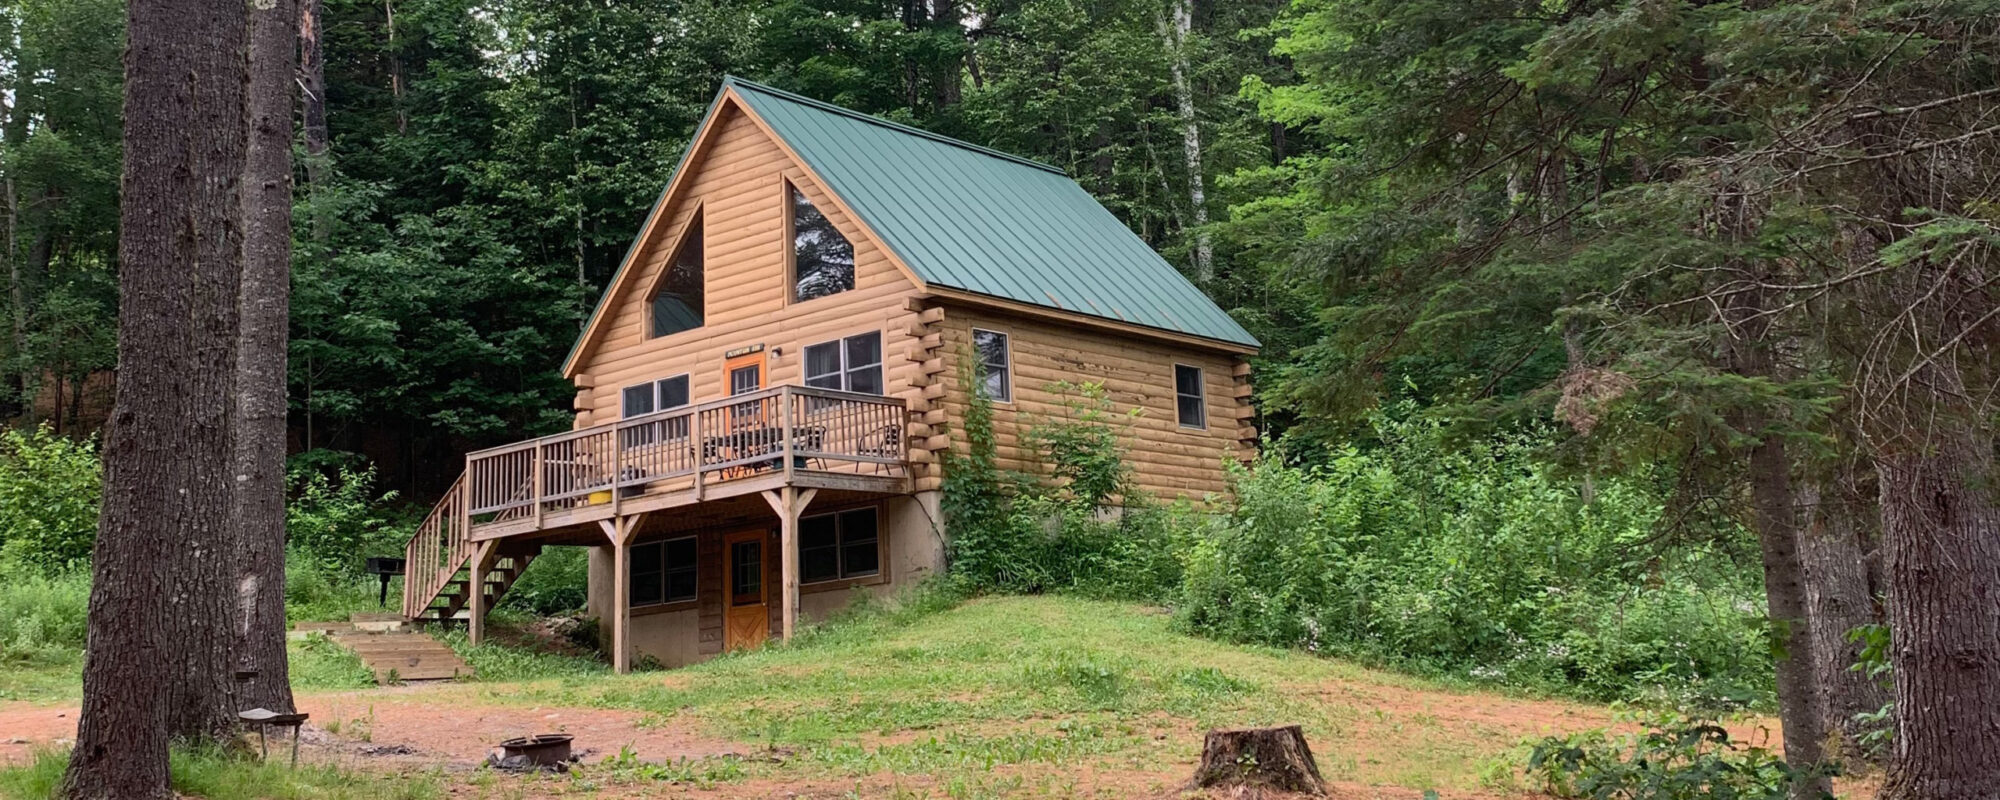 Cabin rentals and camping